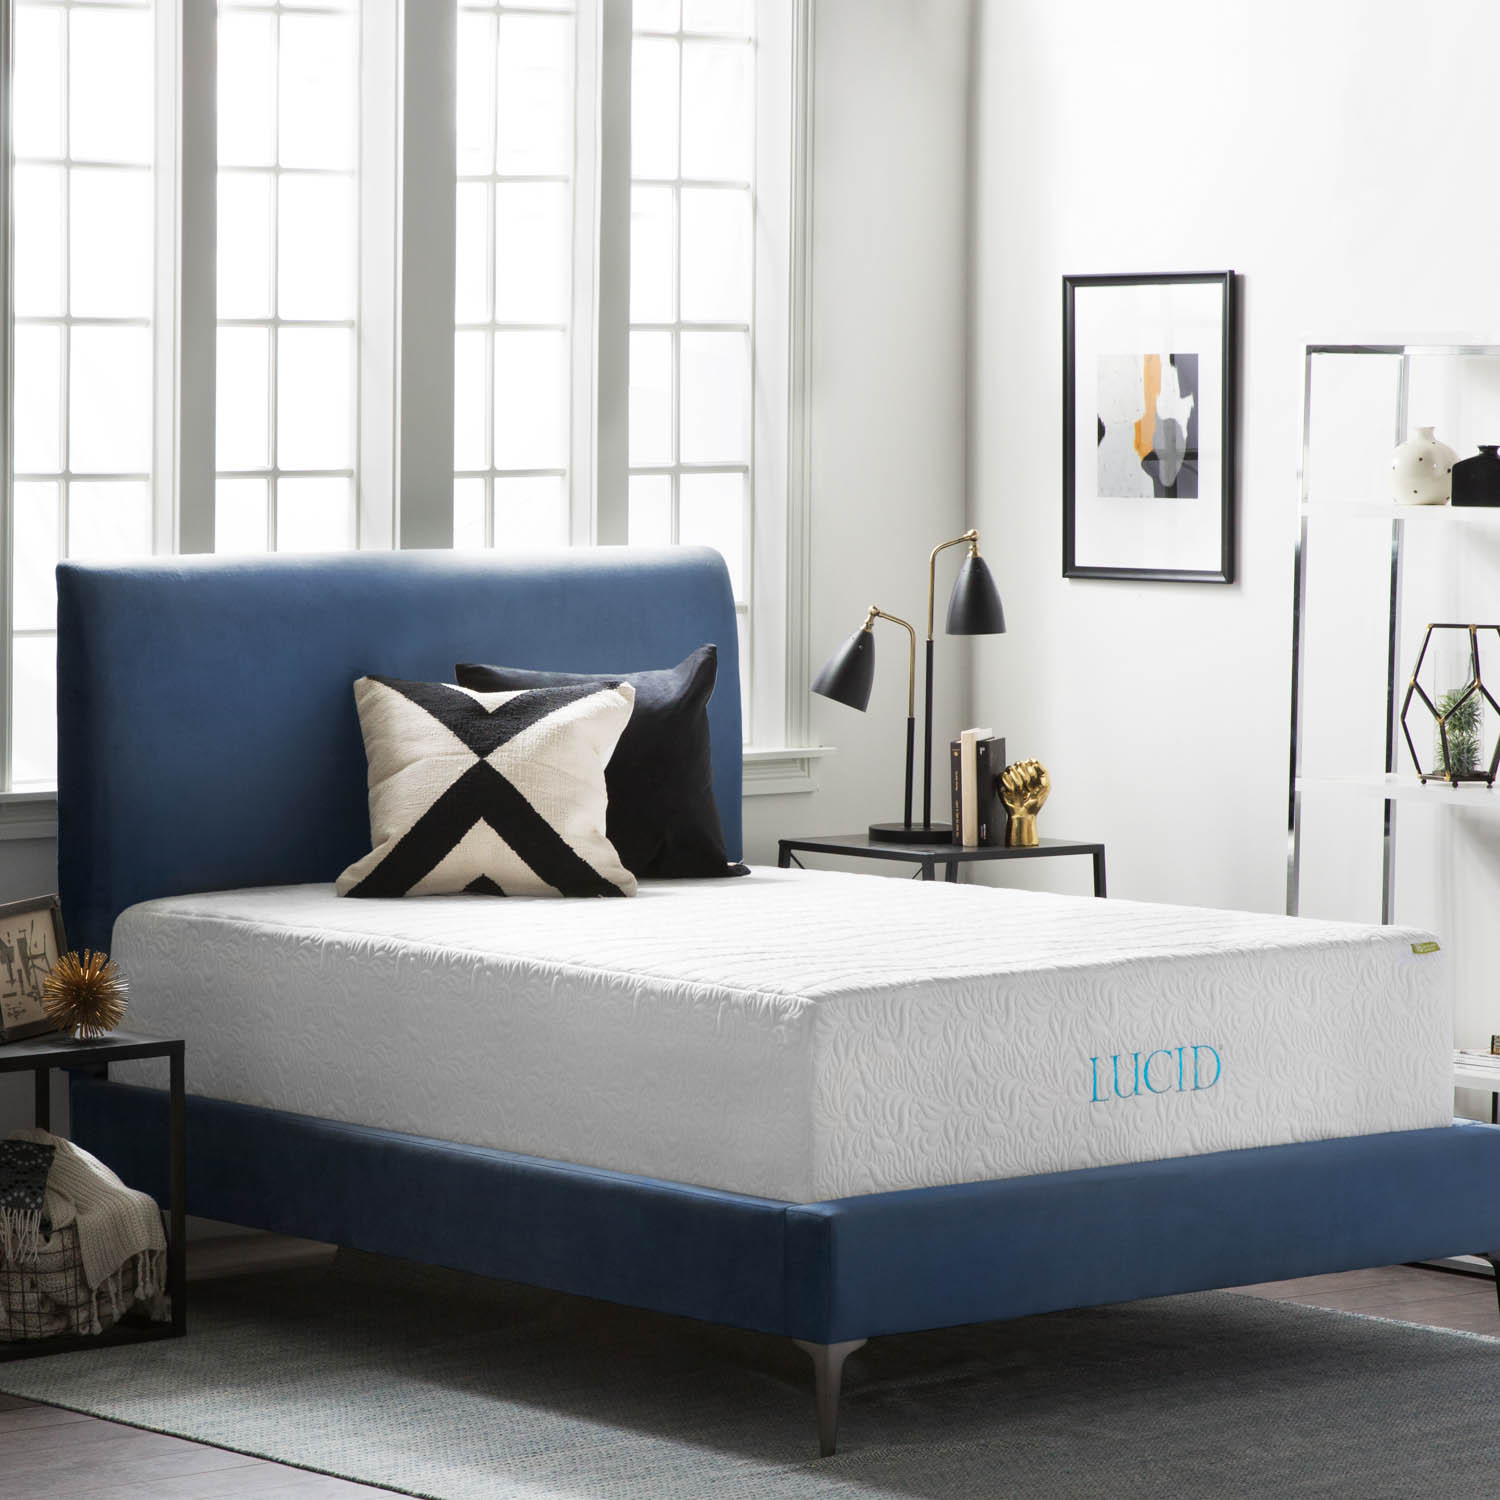 Lucid Deluxe 16 Inch Premium Support Plush Memory Foam Mattress